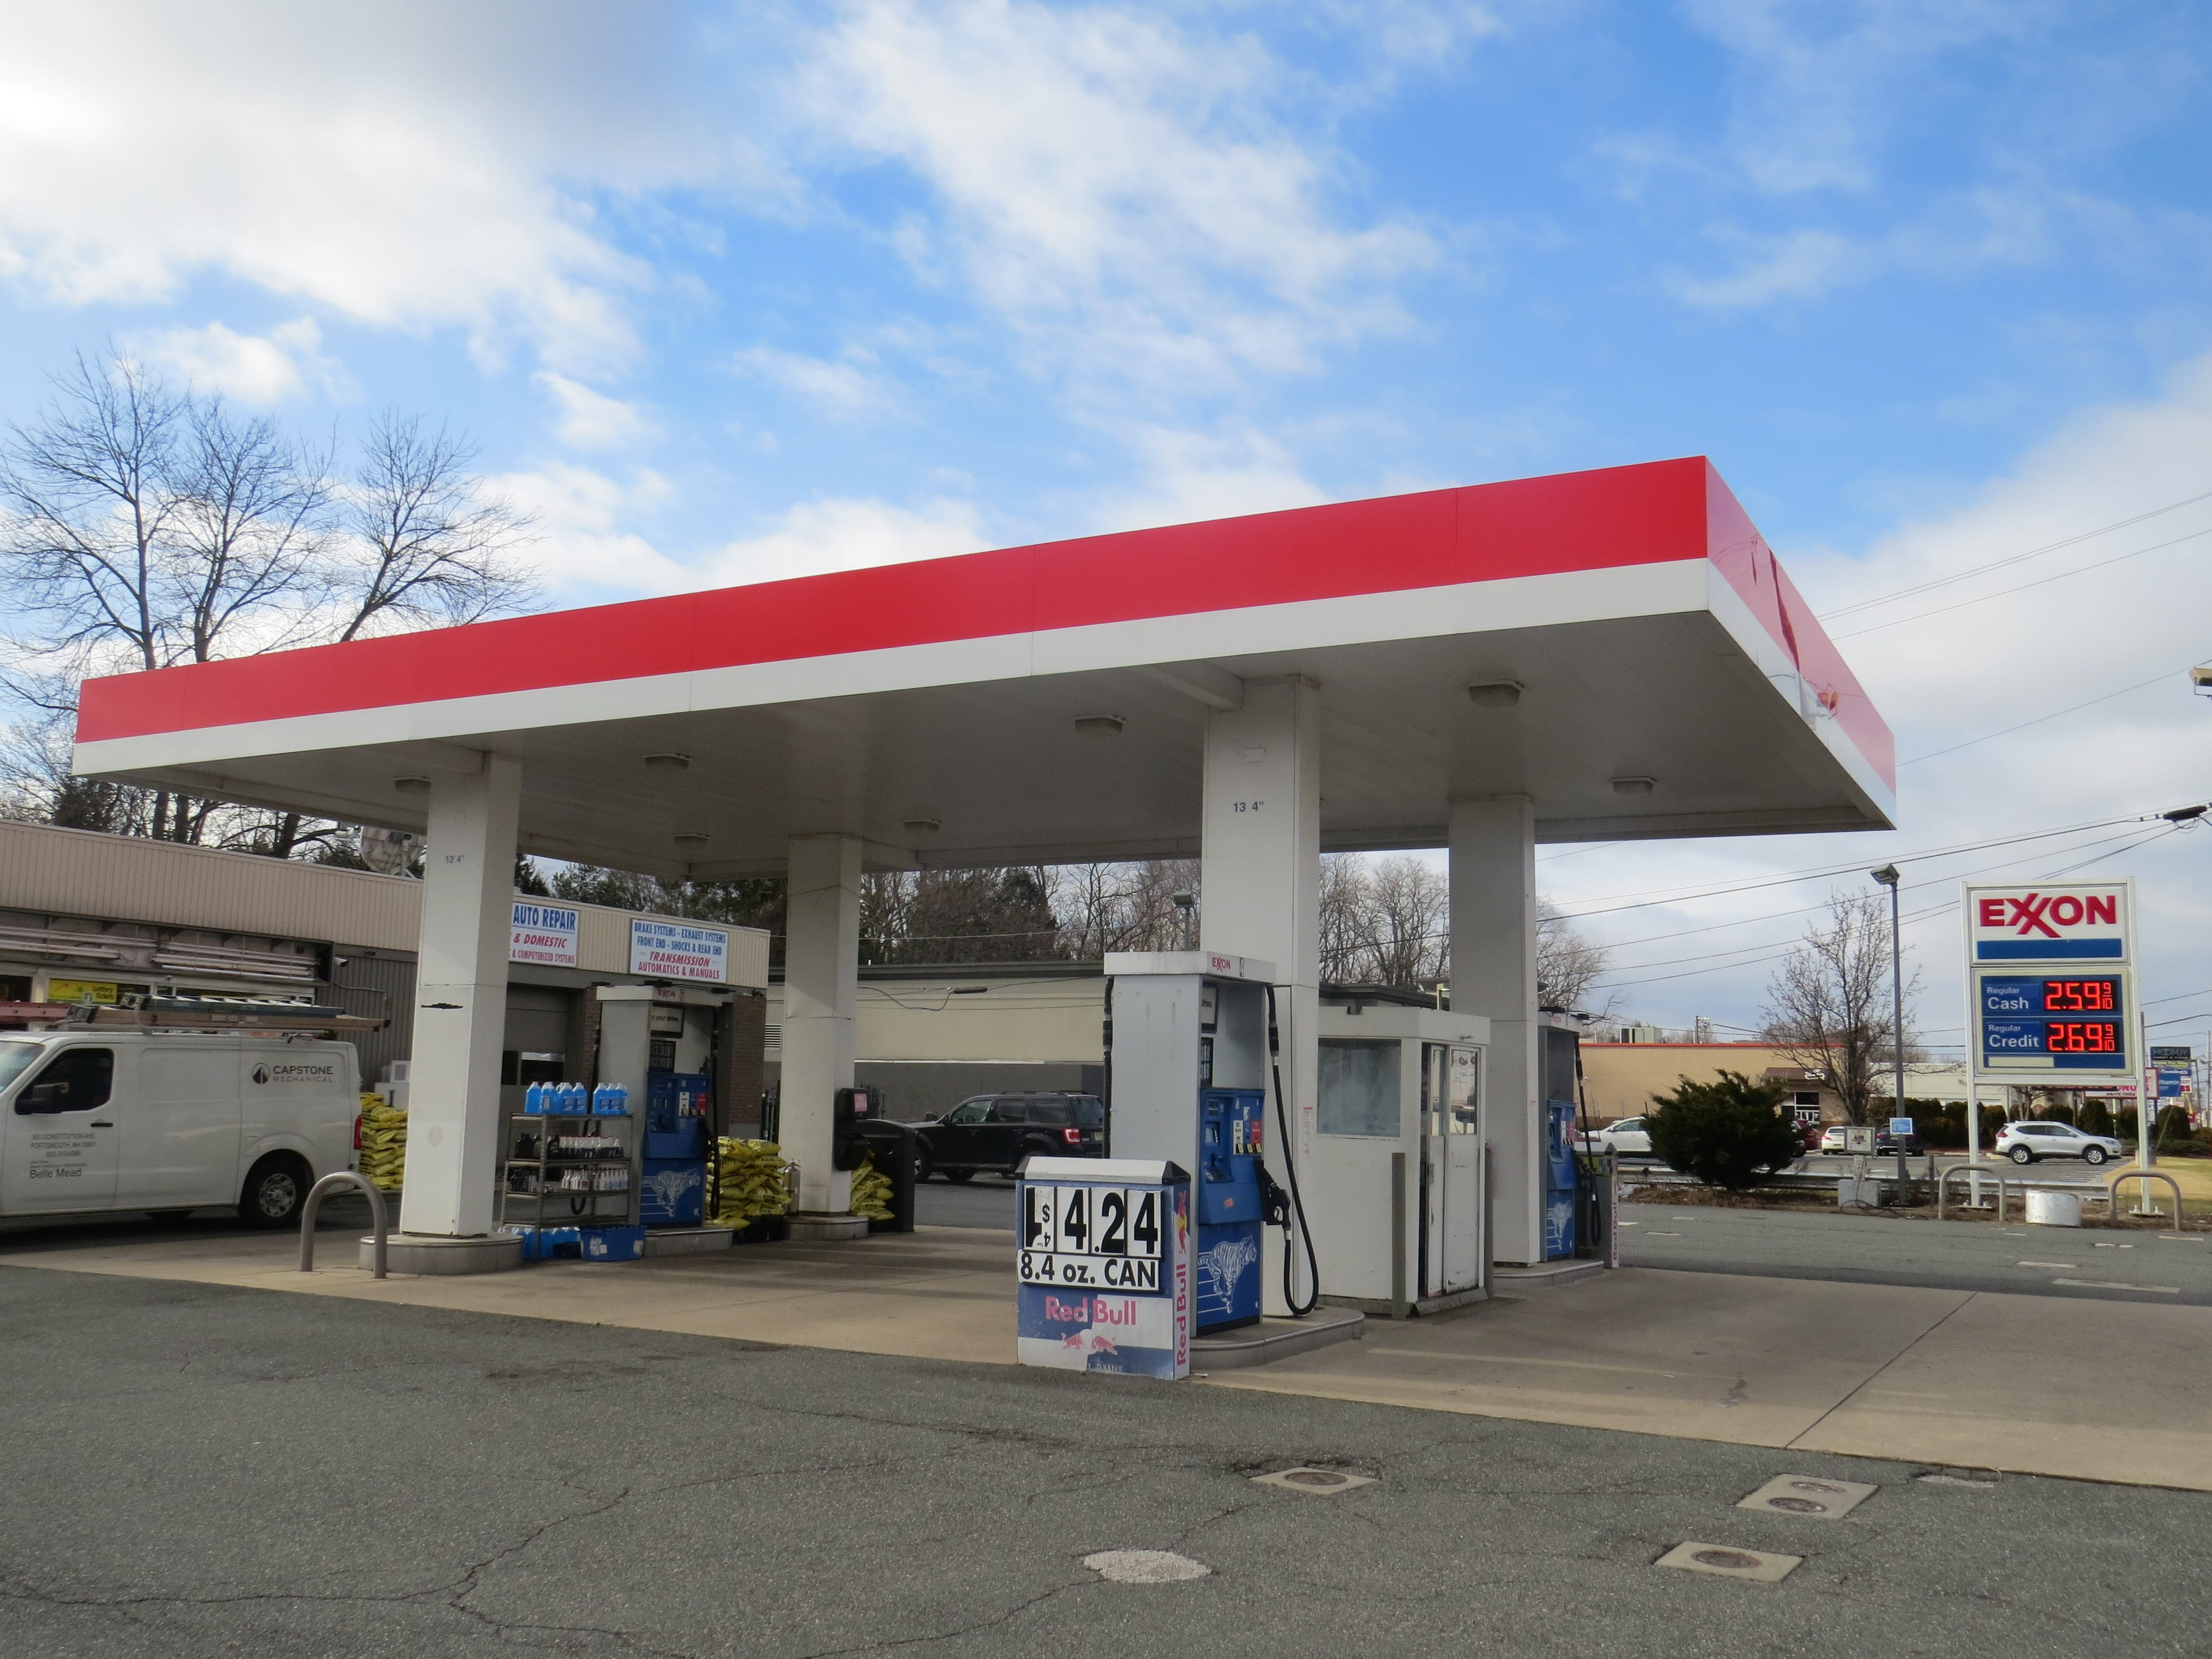 This Exxon service station on Route 10 east in East Hanover was open on Thursday, Jan. 10, 2019, after a late-not armed robbery.